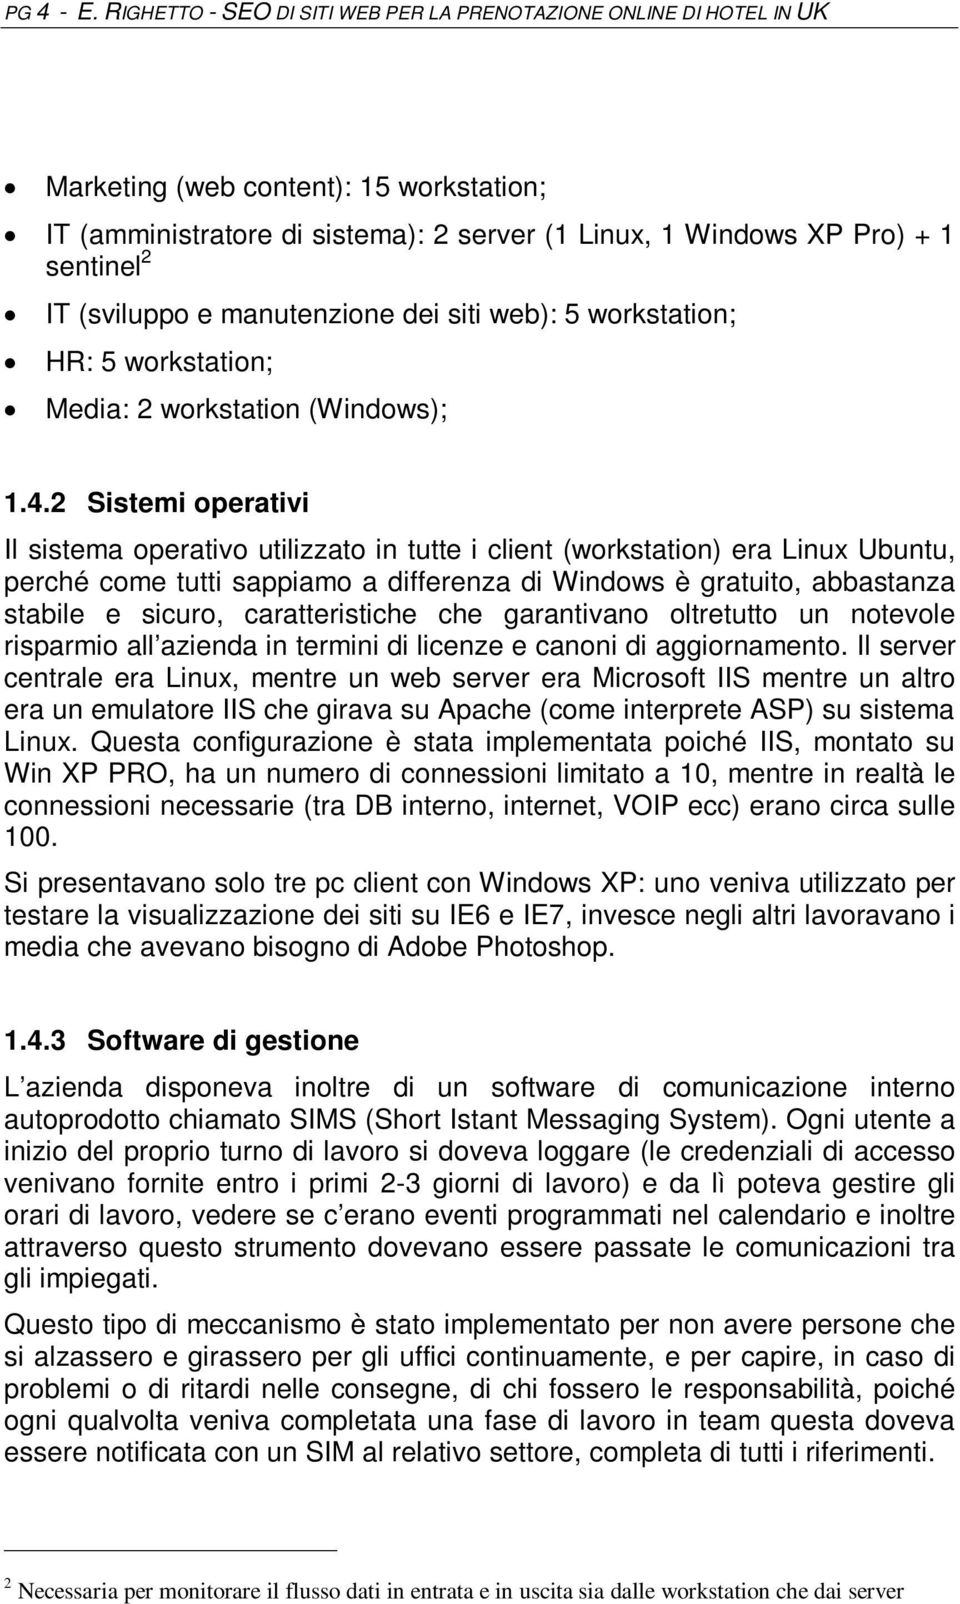 (sviluppo e manutenzione dei siti web): 5 workstation; HR: 5 workstation; Media: 2 workstation (Windows); 1.4.